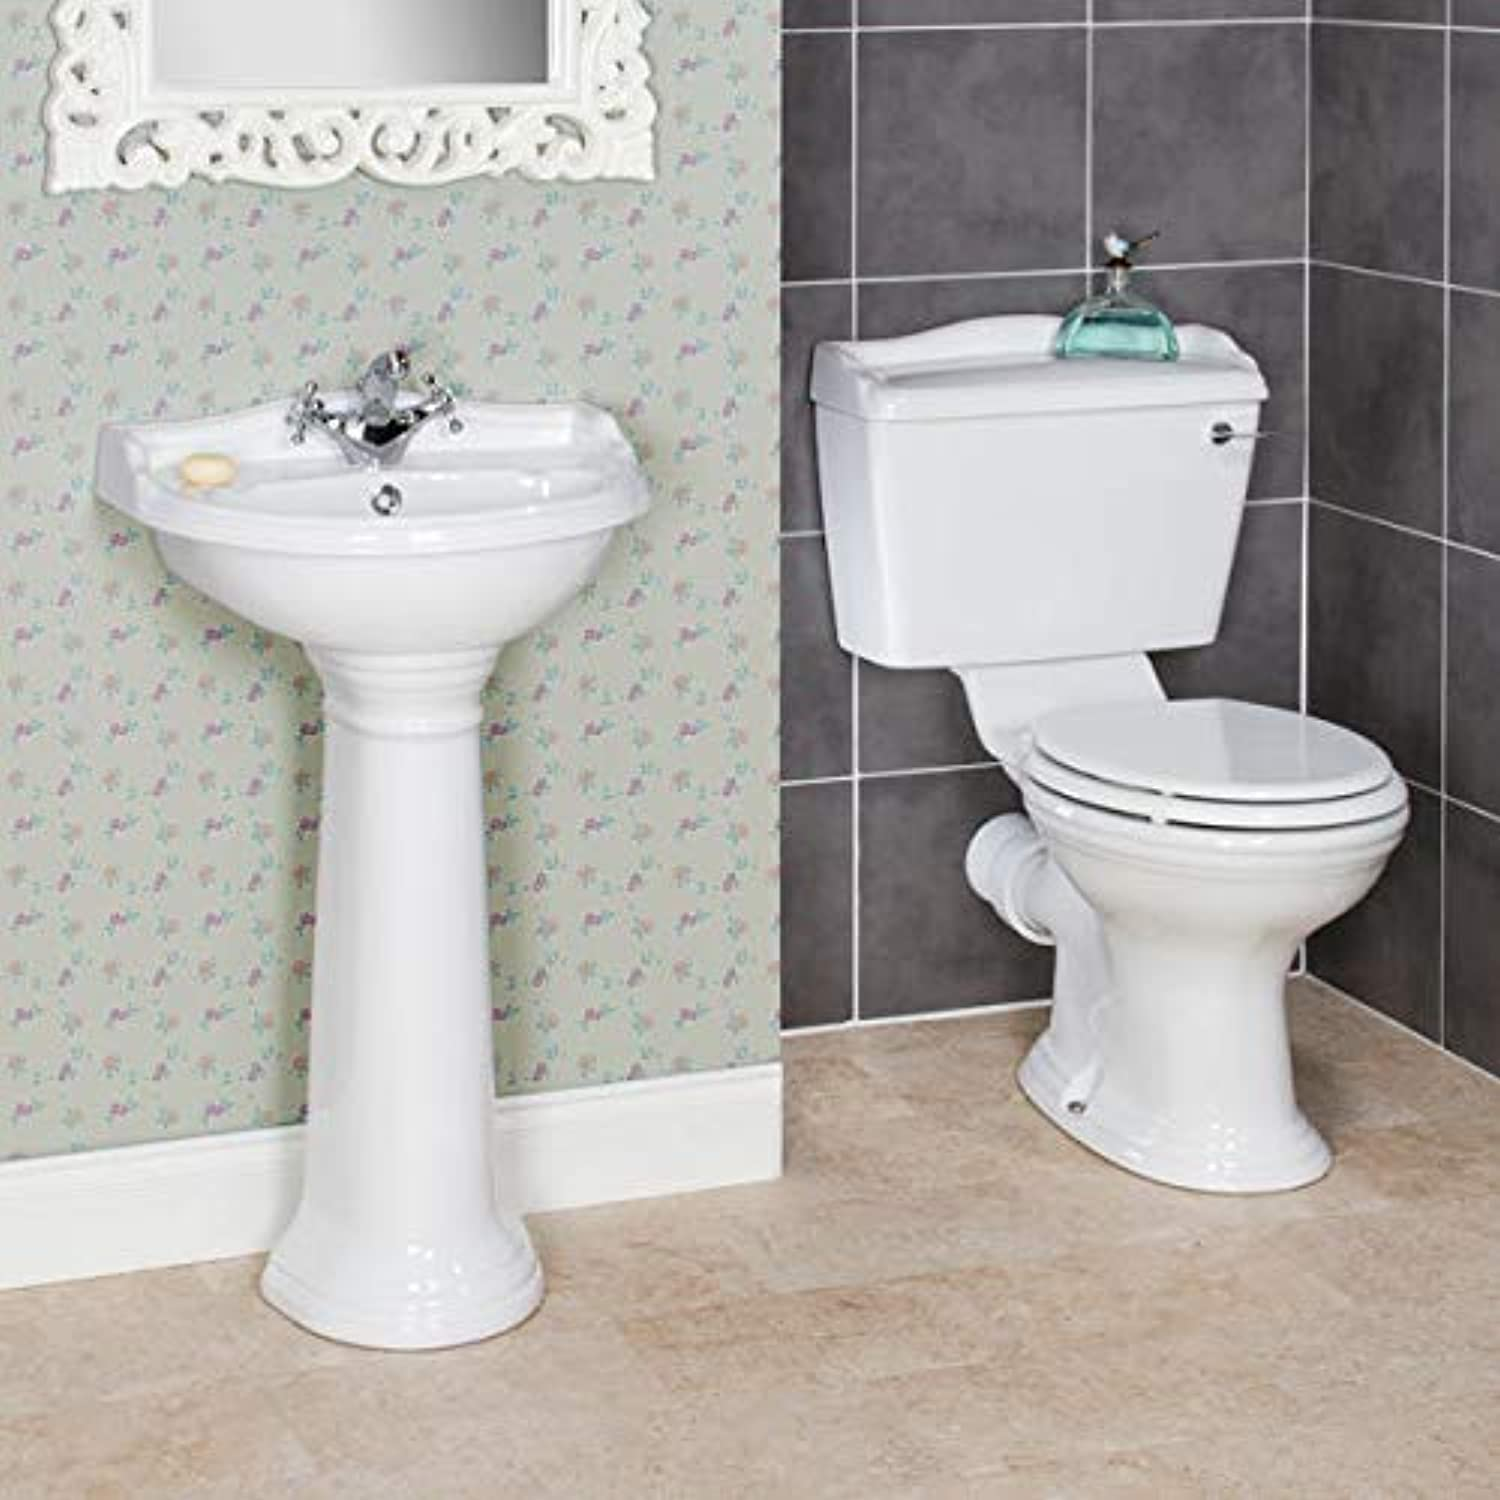 Park Lane Traditional Cloakroom Bathroom Suite Toilet WC 1TH Basin Sink Full Pedestal